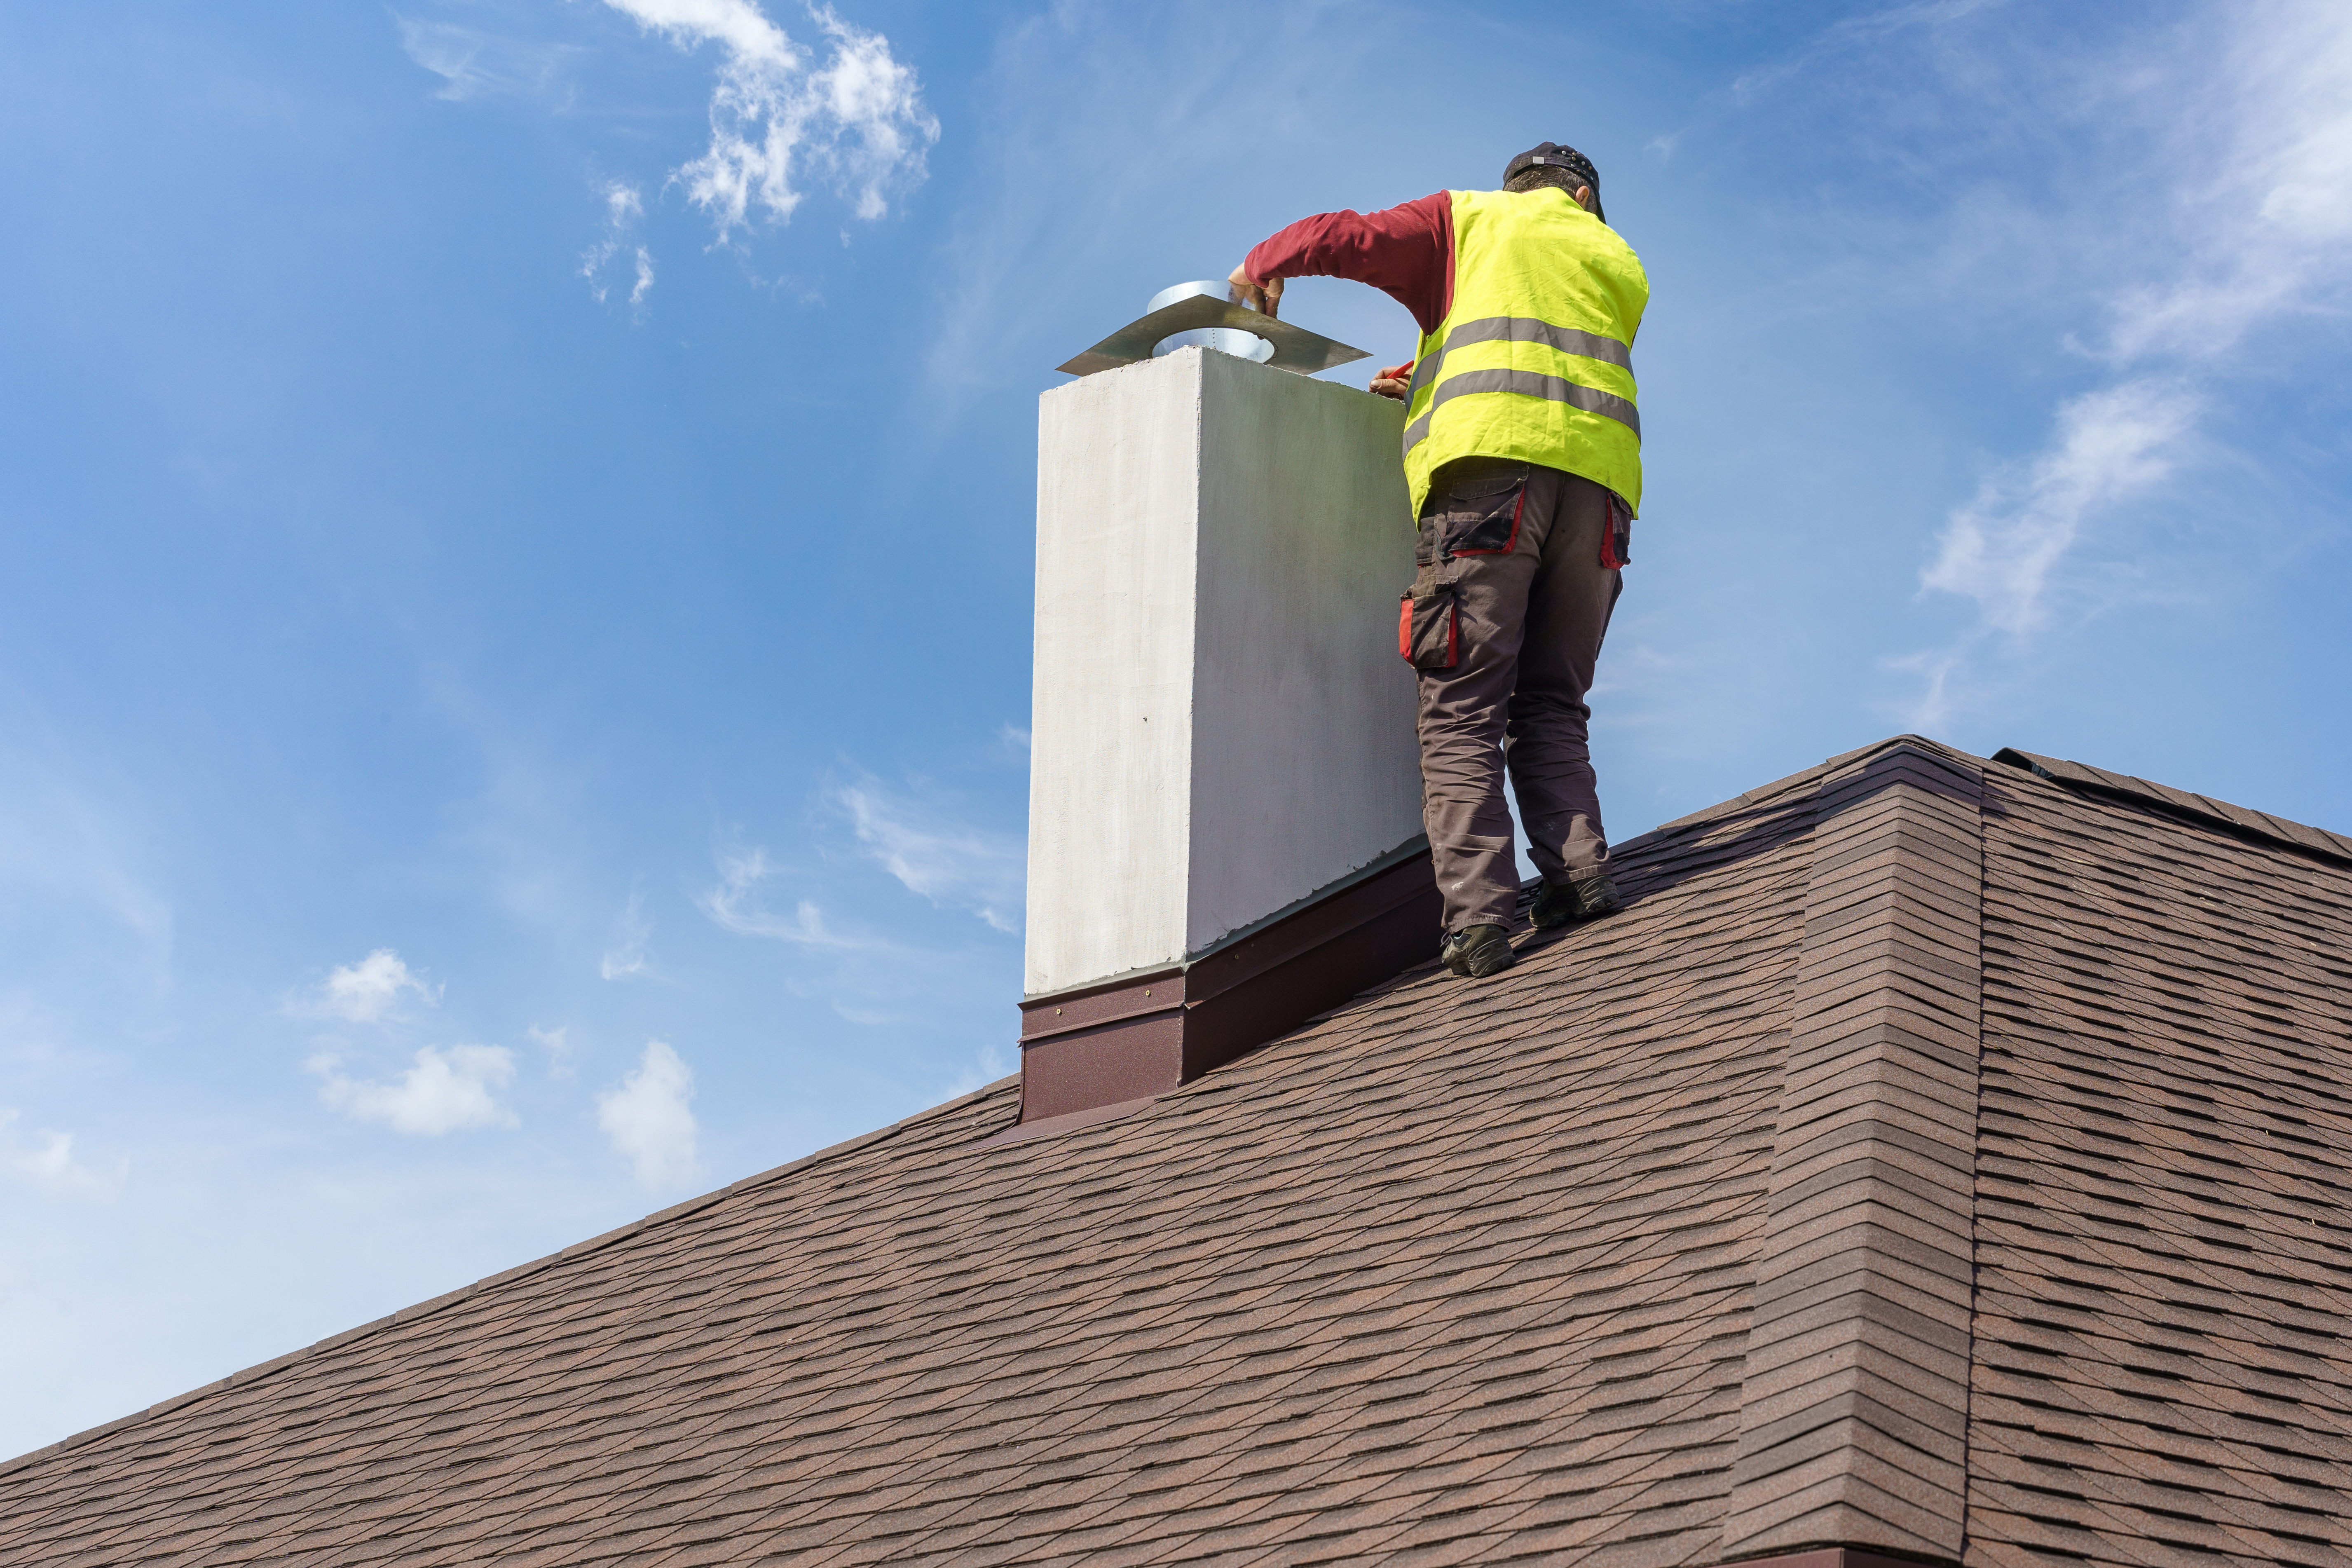 Skilled workman in protective work wear and special uniform install chimney on roof top of new house under construction